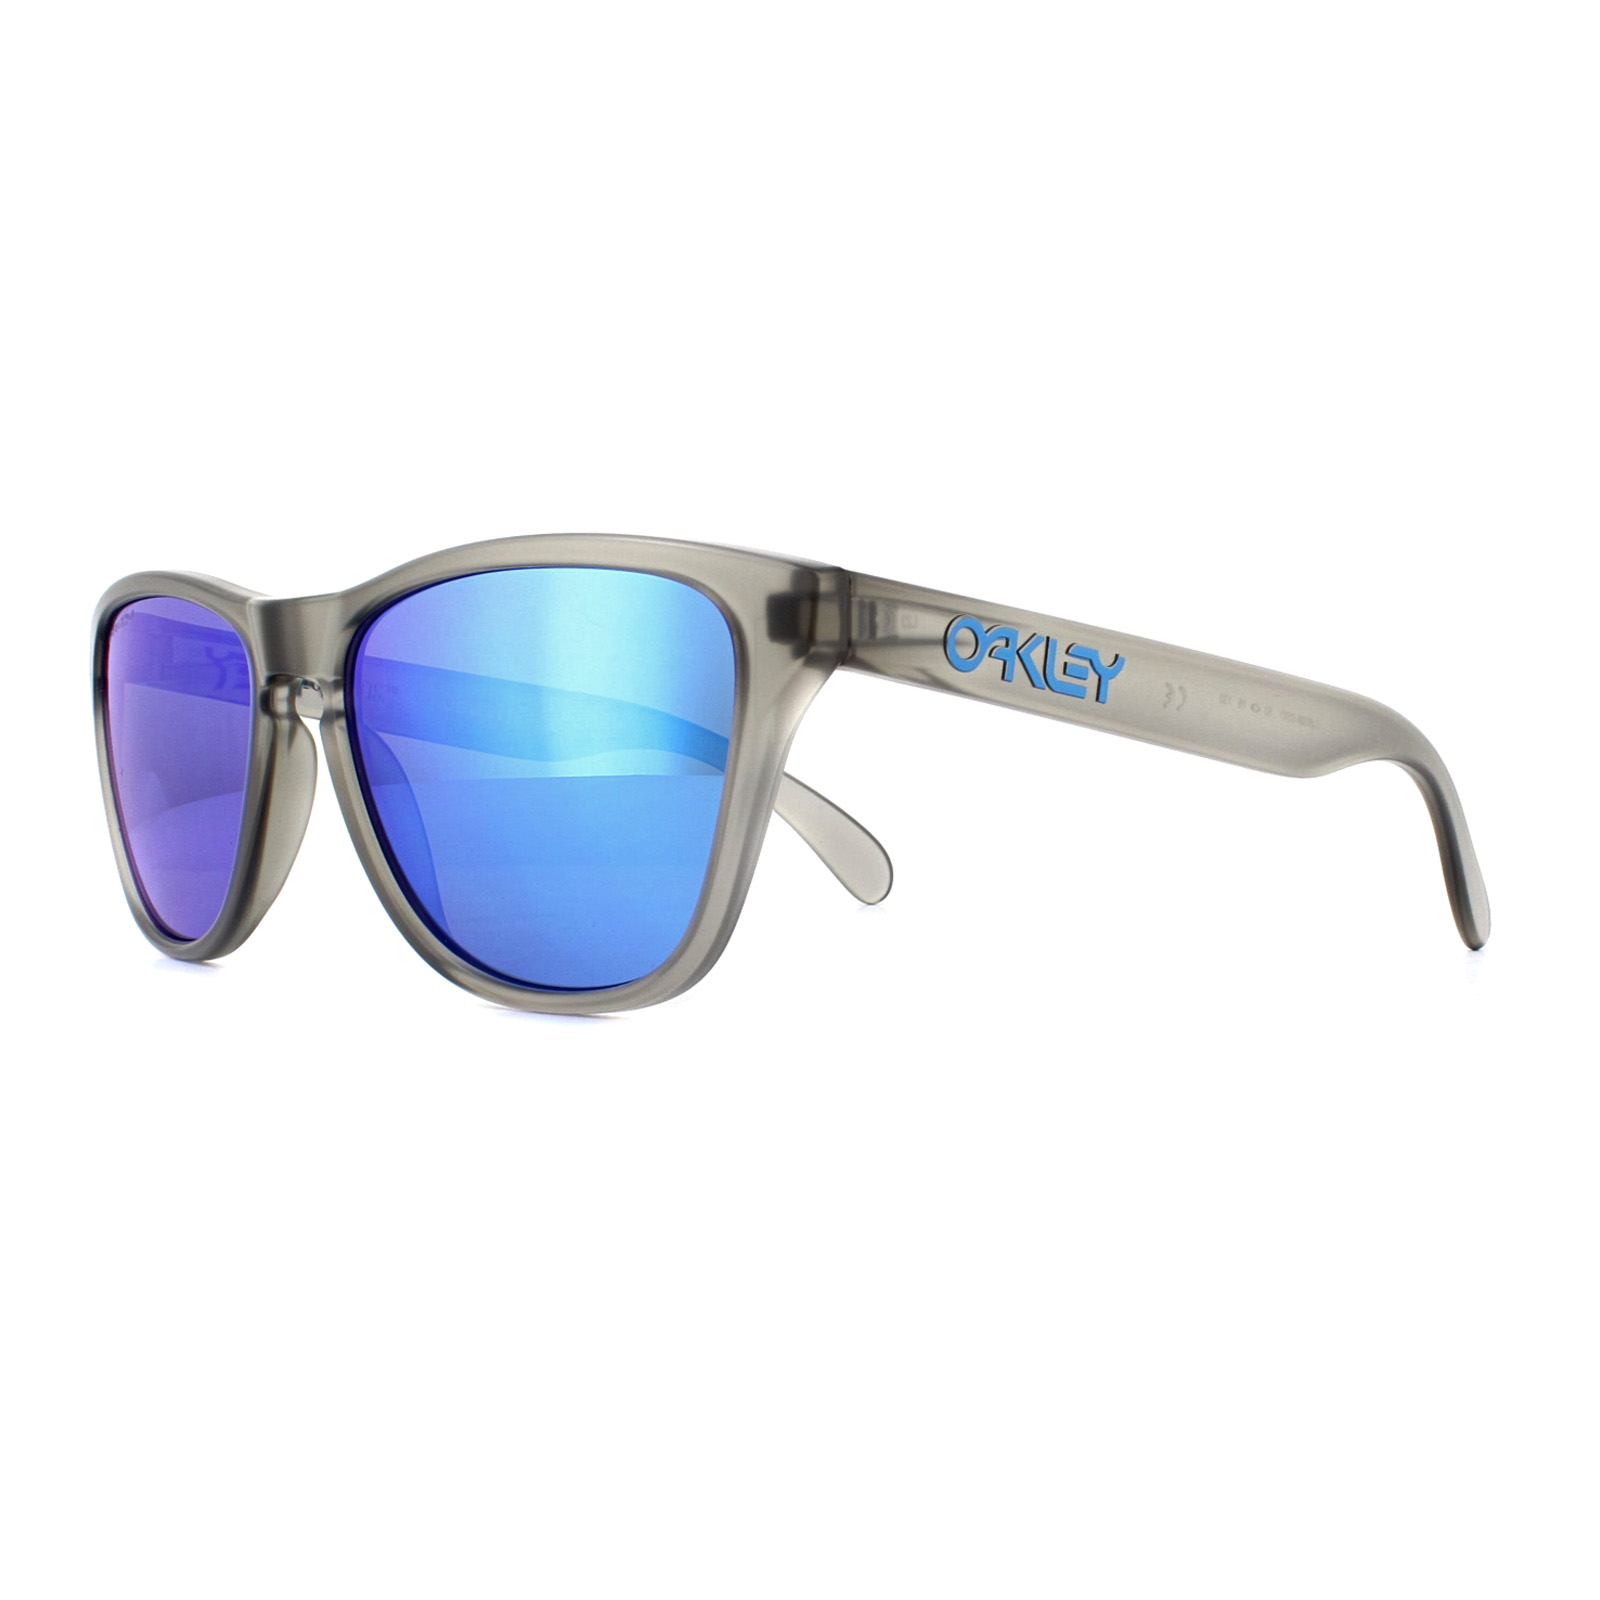 9f8f719567 Cheap Oakley Frogskins XS Sunglasses - Discounted Sunglasses